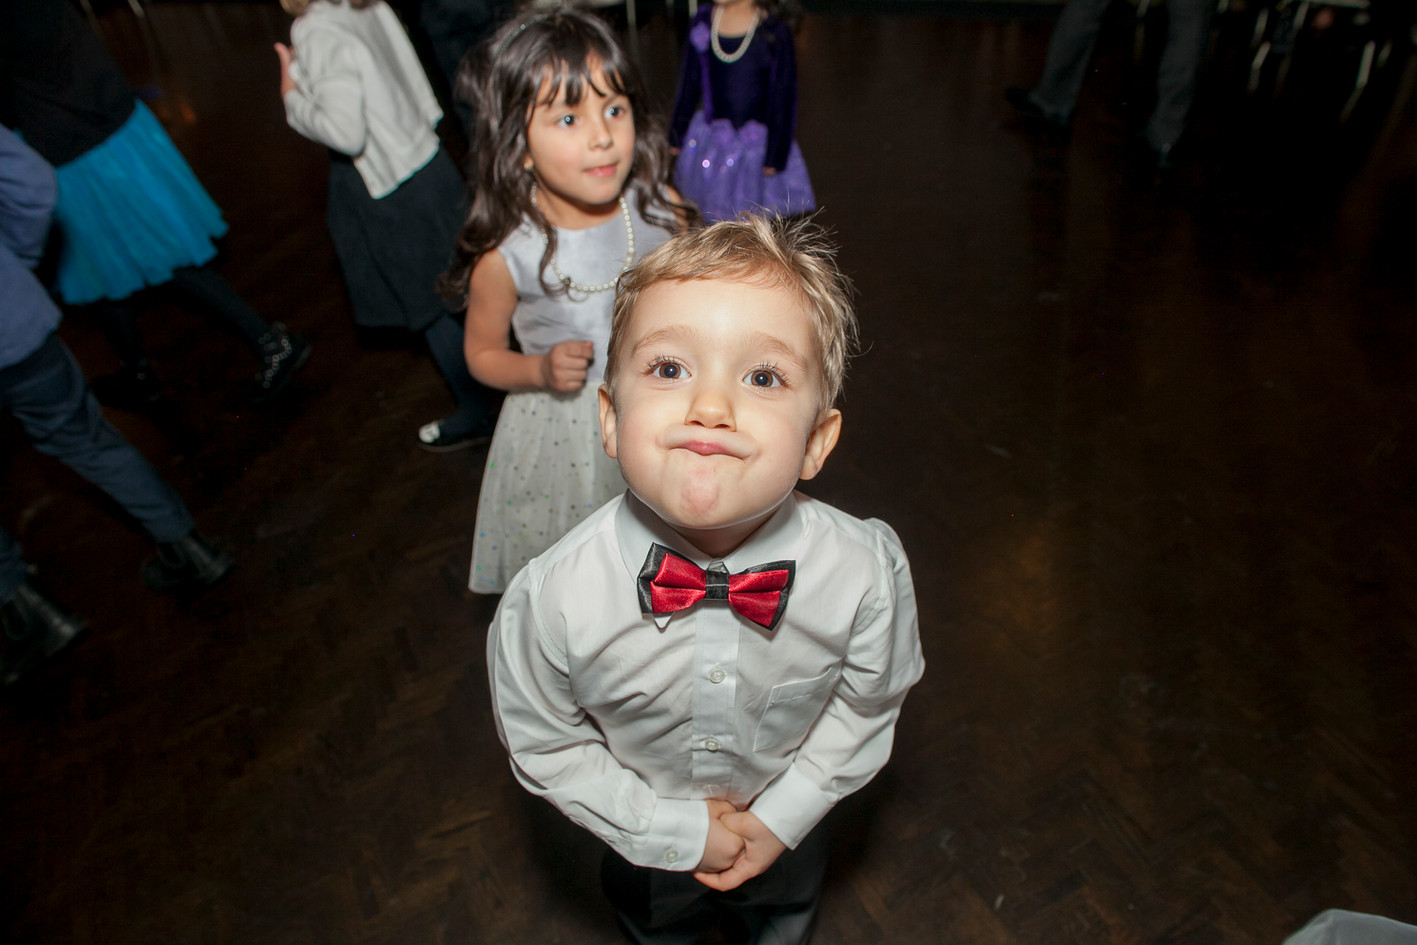 Little boy wearing a red bowtie at a wedding party